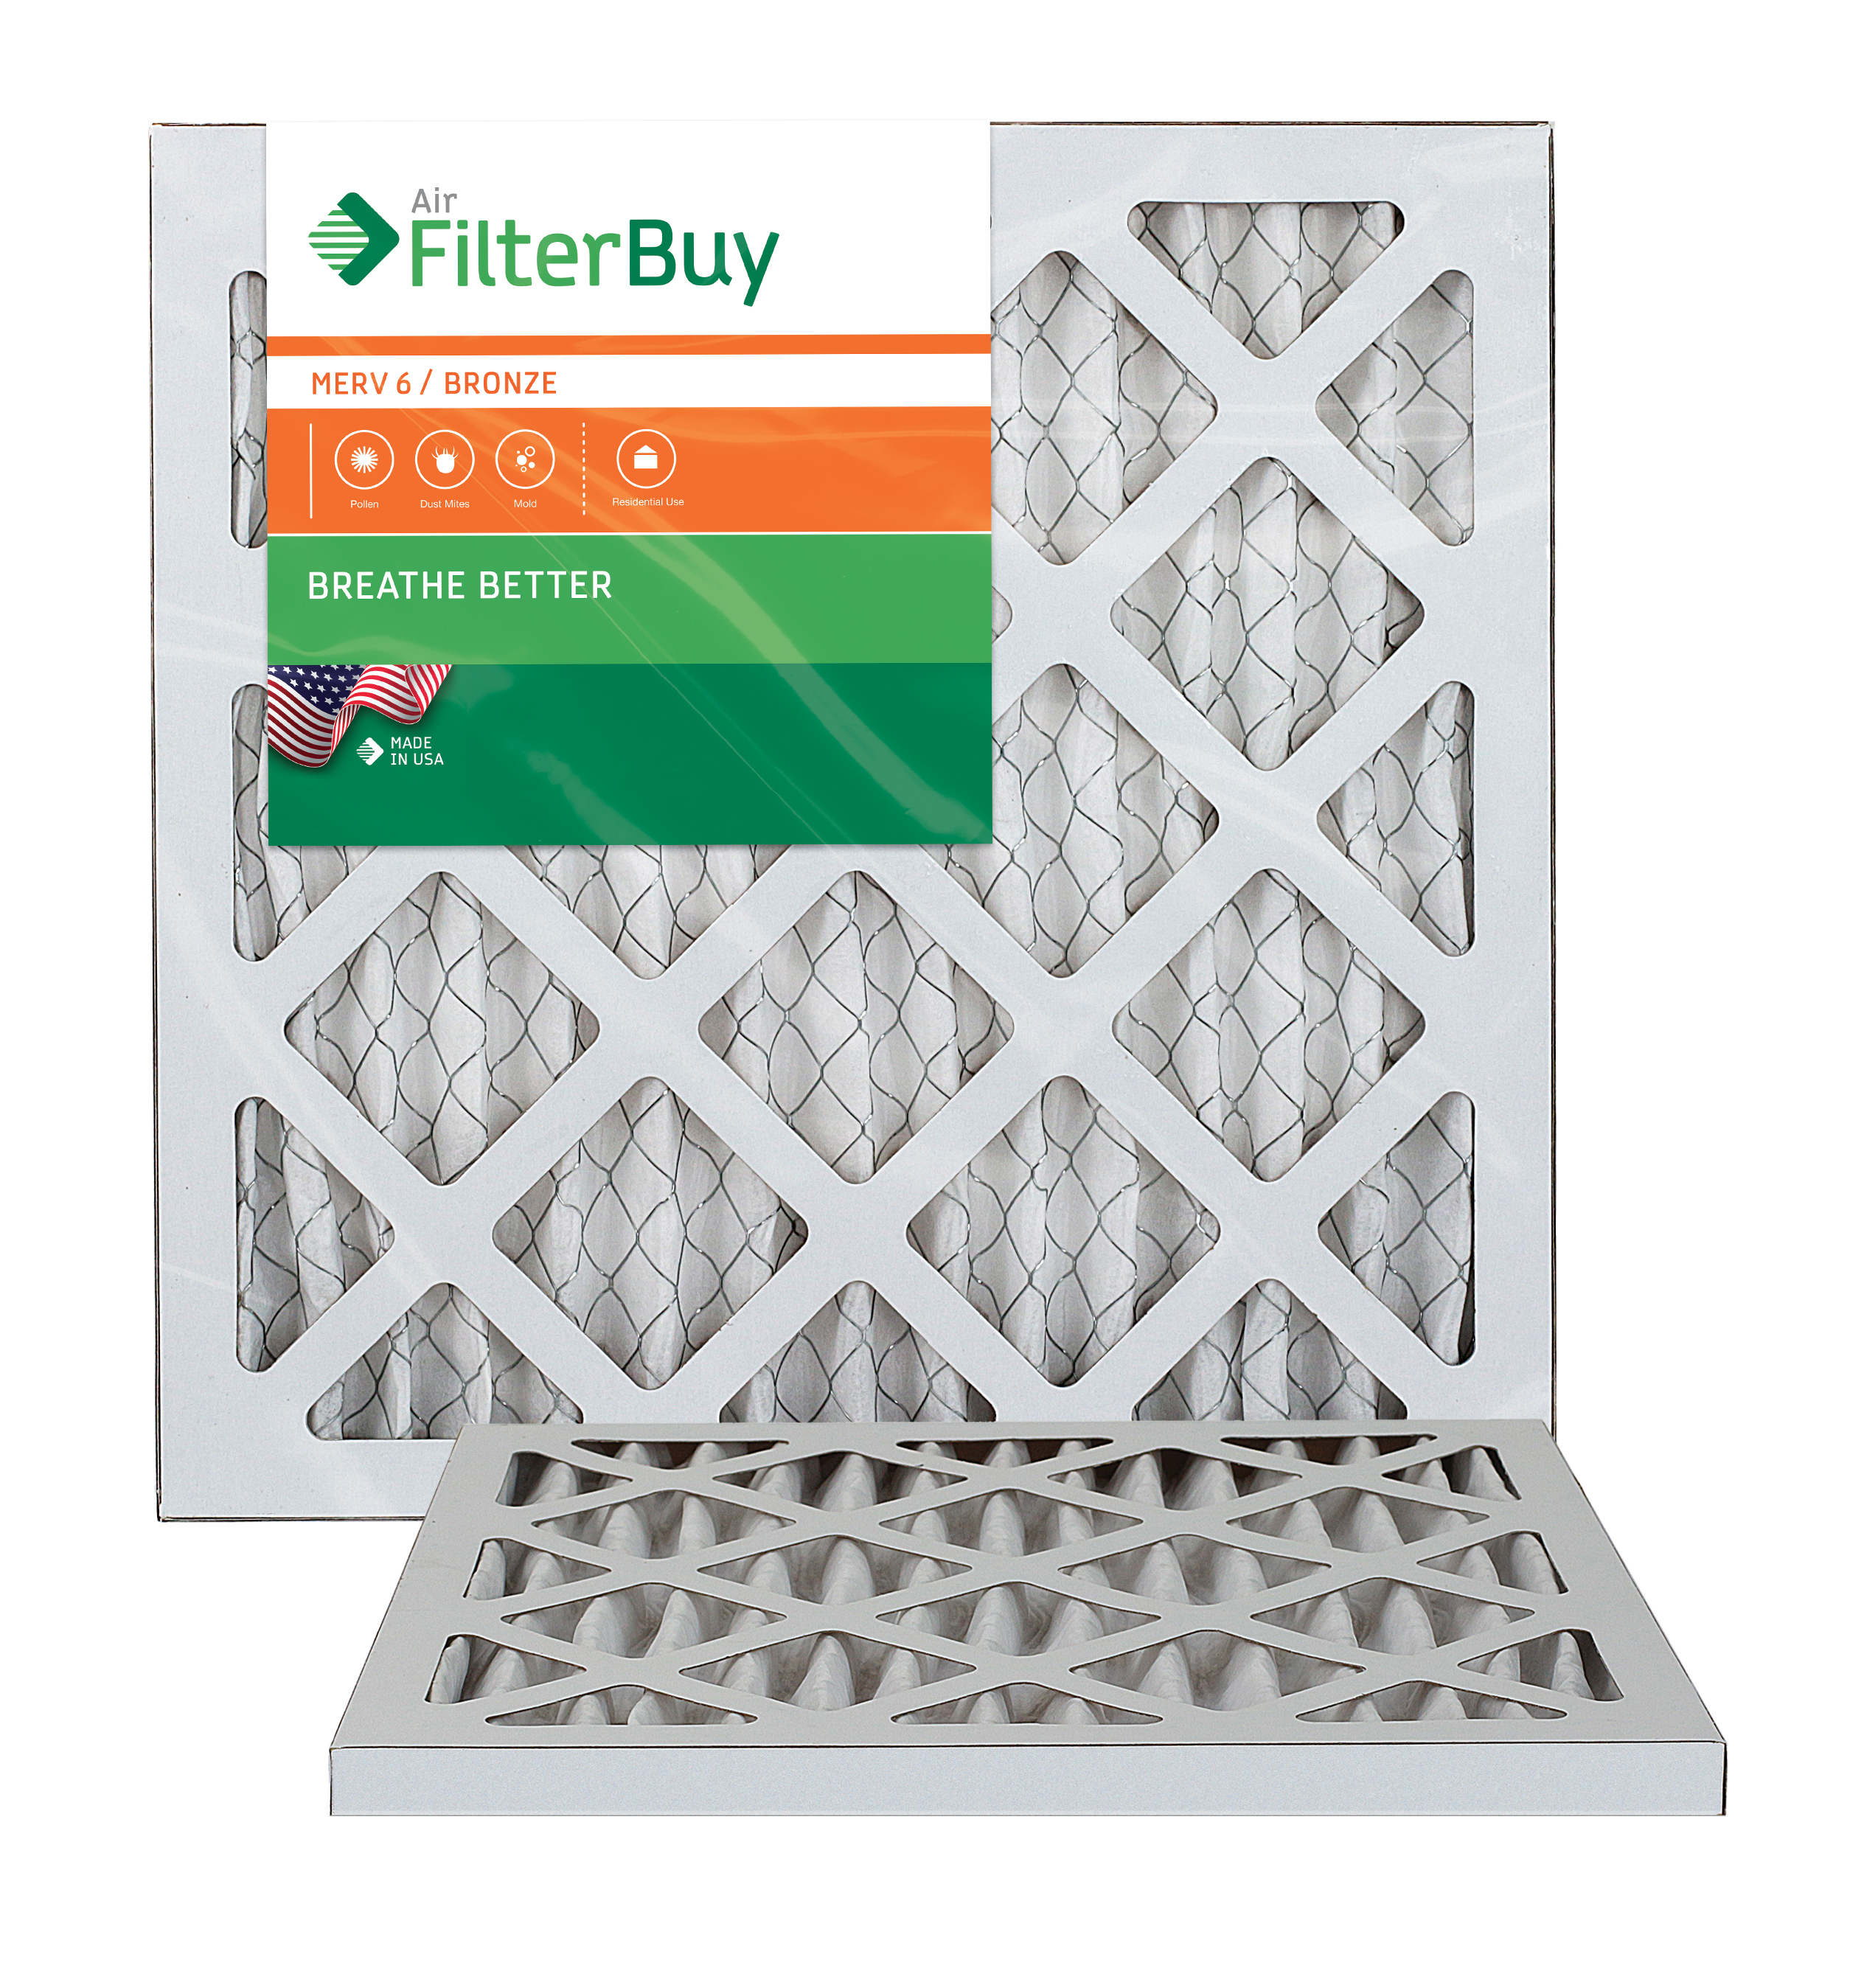 AFB Bronze MERV 6 12x12x1 (Actual Size) Pleated AC Furnace Air Filter. Pack of 2 Filters. 100% produced in the USA.